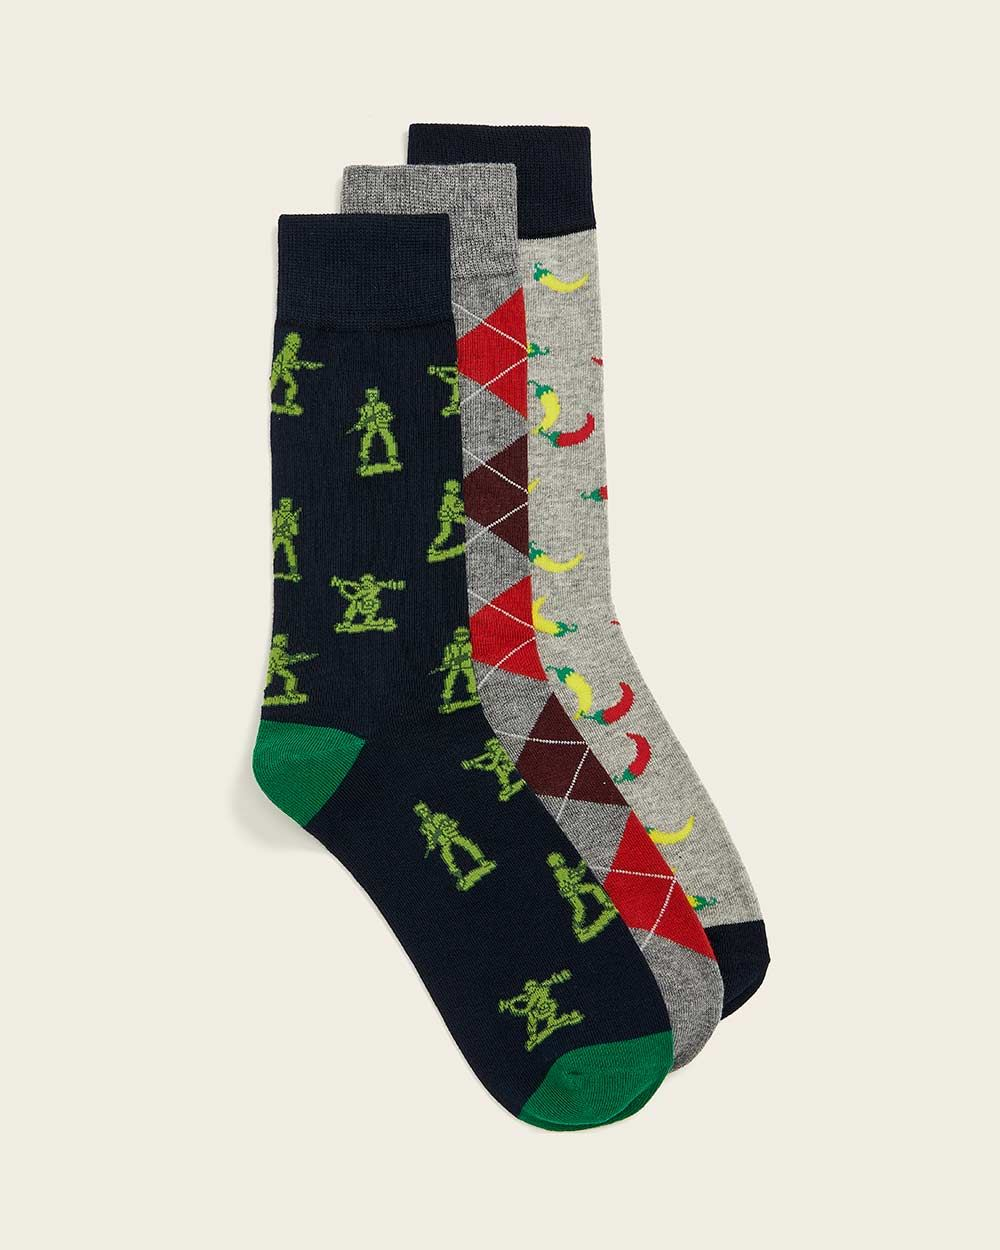 Hot Pepper Pattern Socks - 3 Pairs